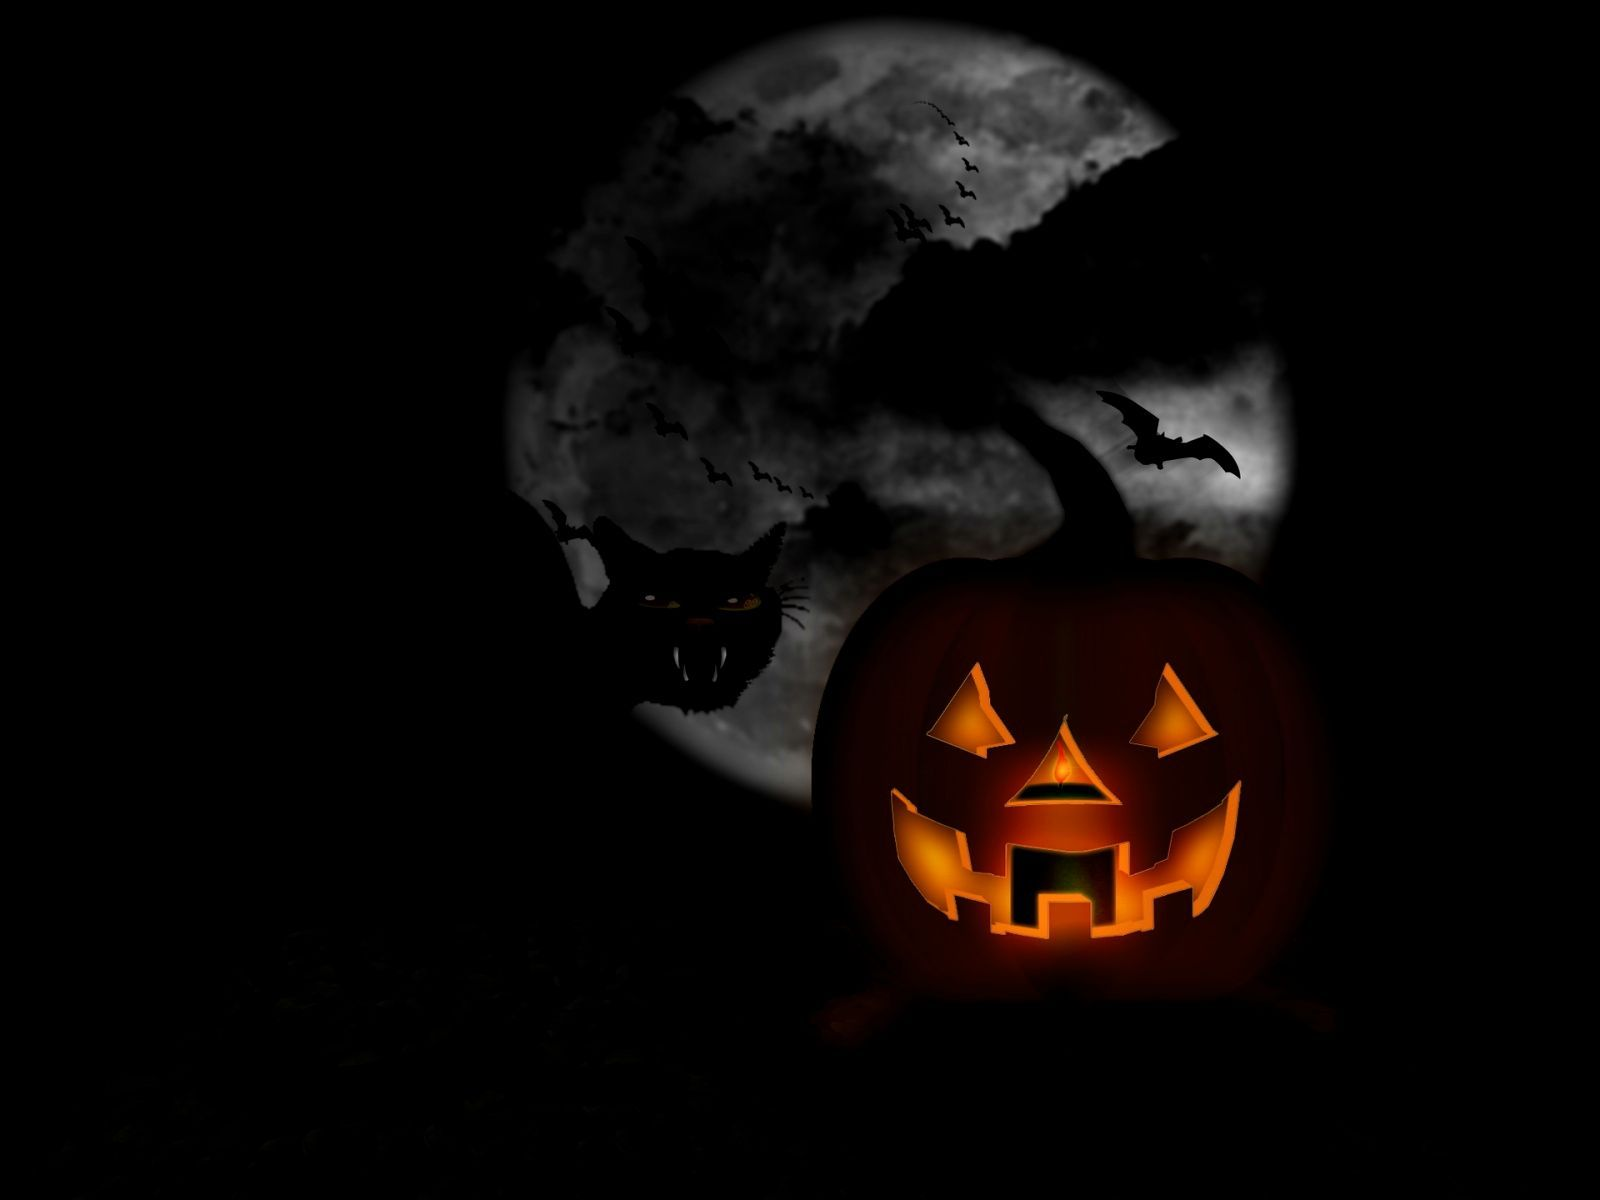 mdm scary halloween wallpaper free scary halloween hd photos 19201200 halloween wallpapers - Free Scary Halloween Images